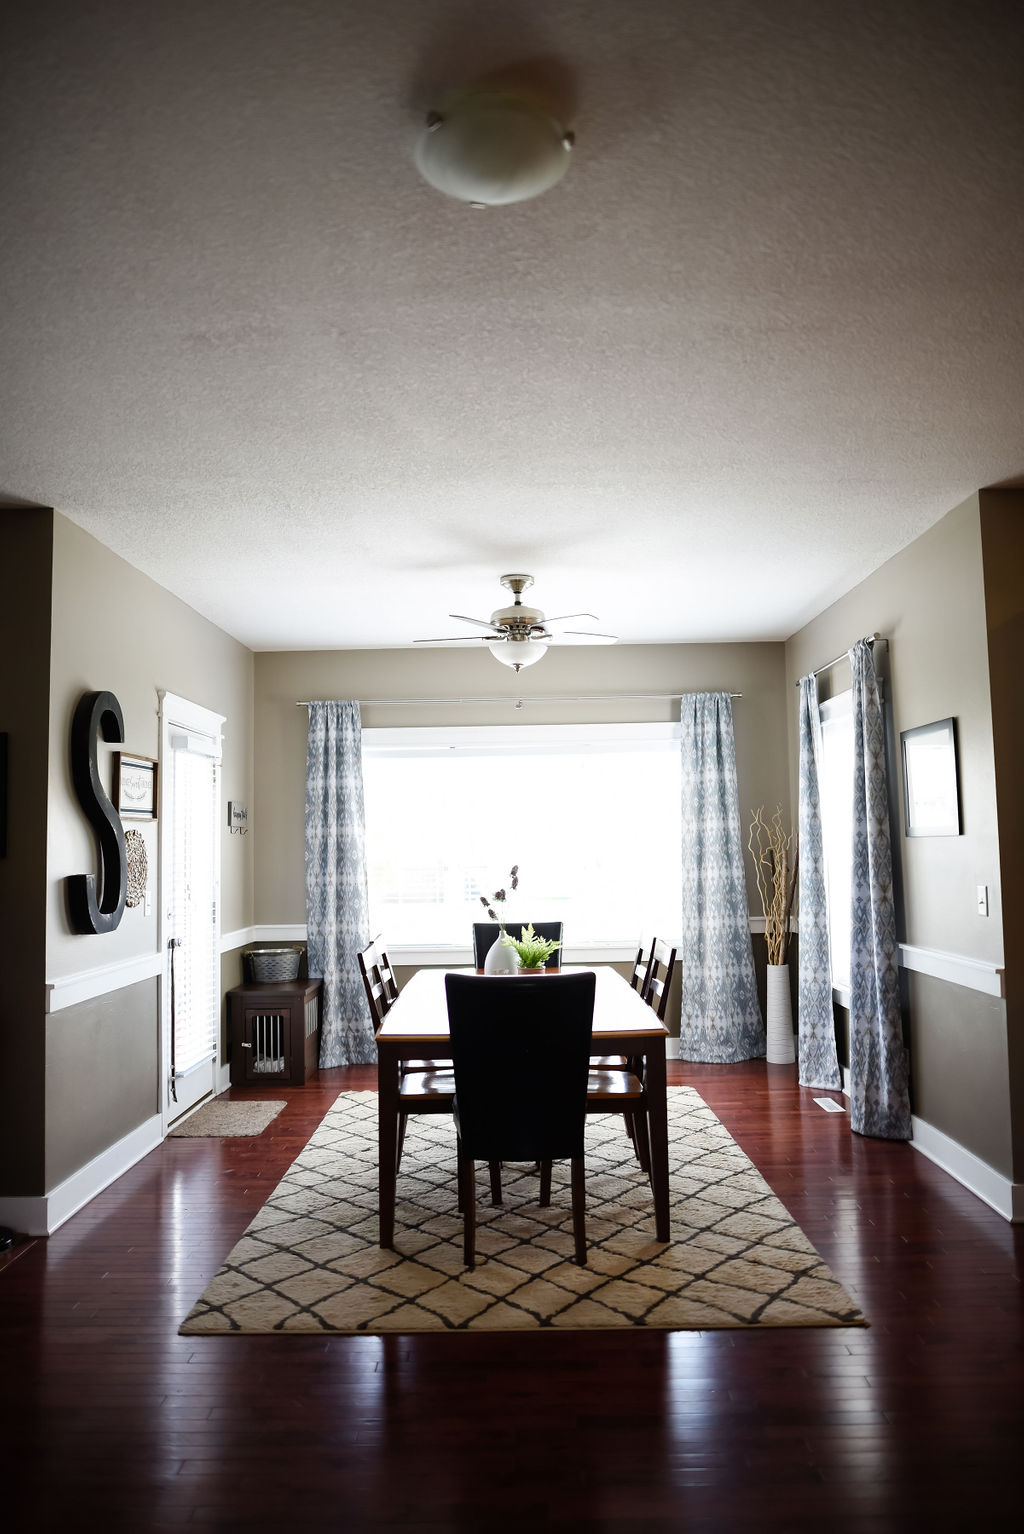 Days Run West - Urbandale, IA by H.Prall and Co. Interior Decorating | Photography by  Cherrie' Photography